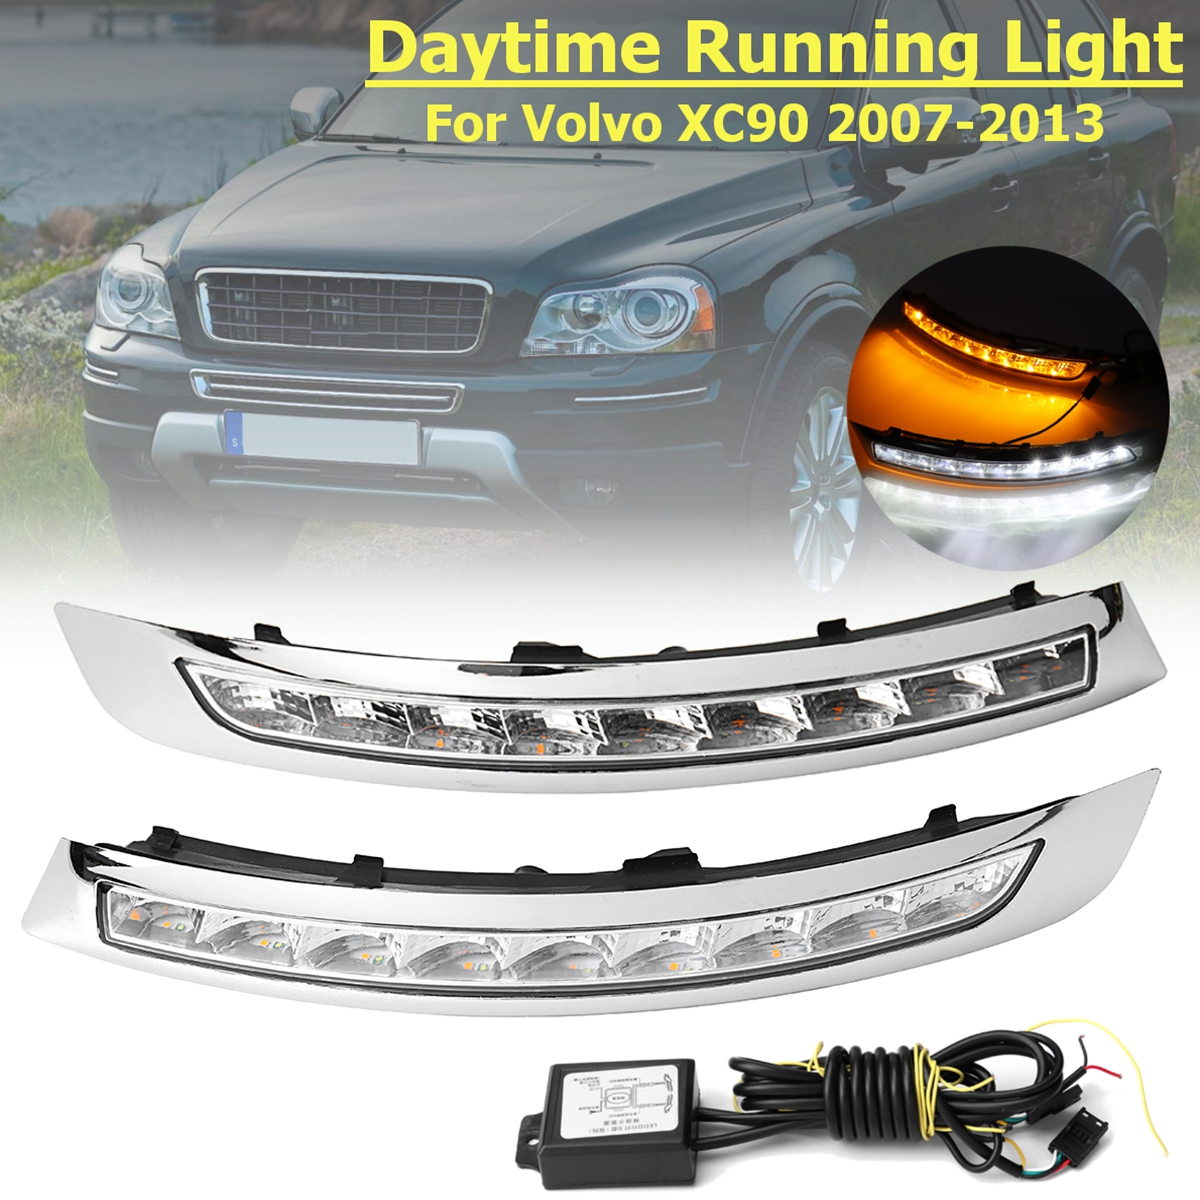 1 Pair LED DRL Daytime Running Lights Lamp Turning Signal fog lamp 12V 6000k Fog Lamp Frame Fog Light For Volvo XC90 2007~2013 hot sale 12v 6000k led drl daytime running light for toyota corolla 2007 2010 plating fog lamp frame fog light